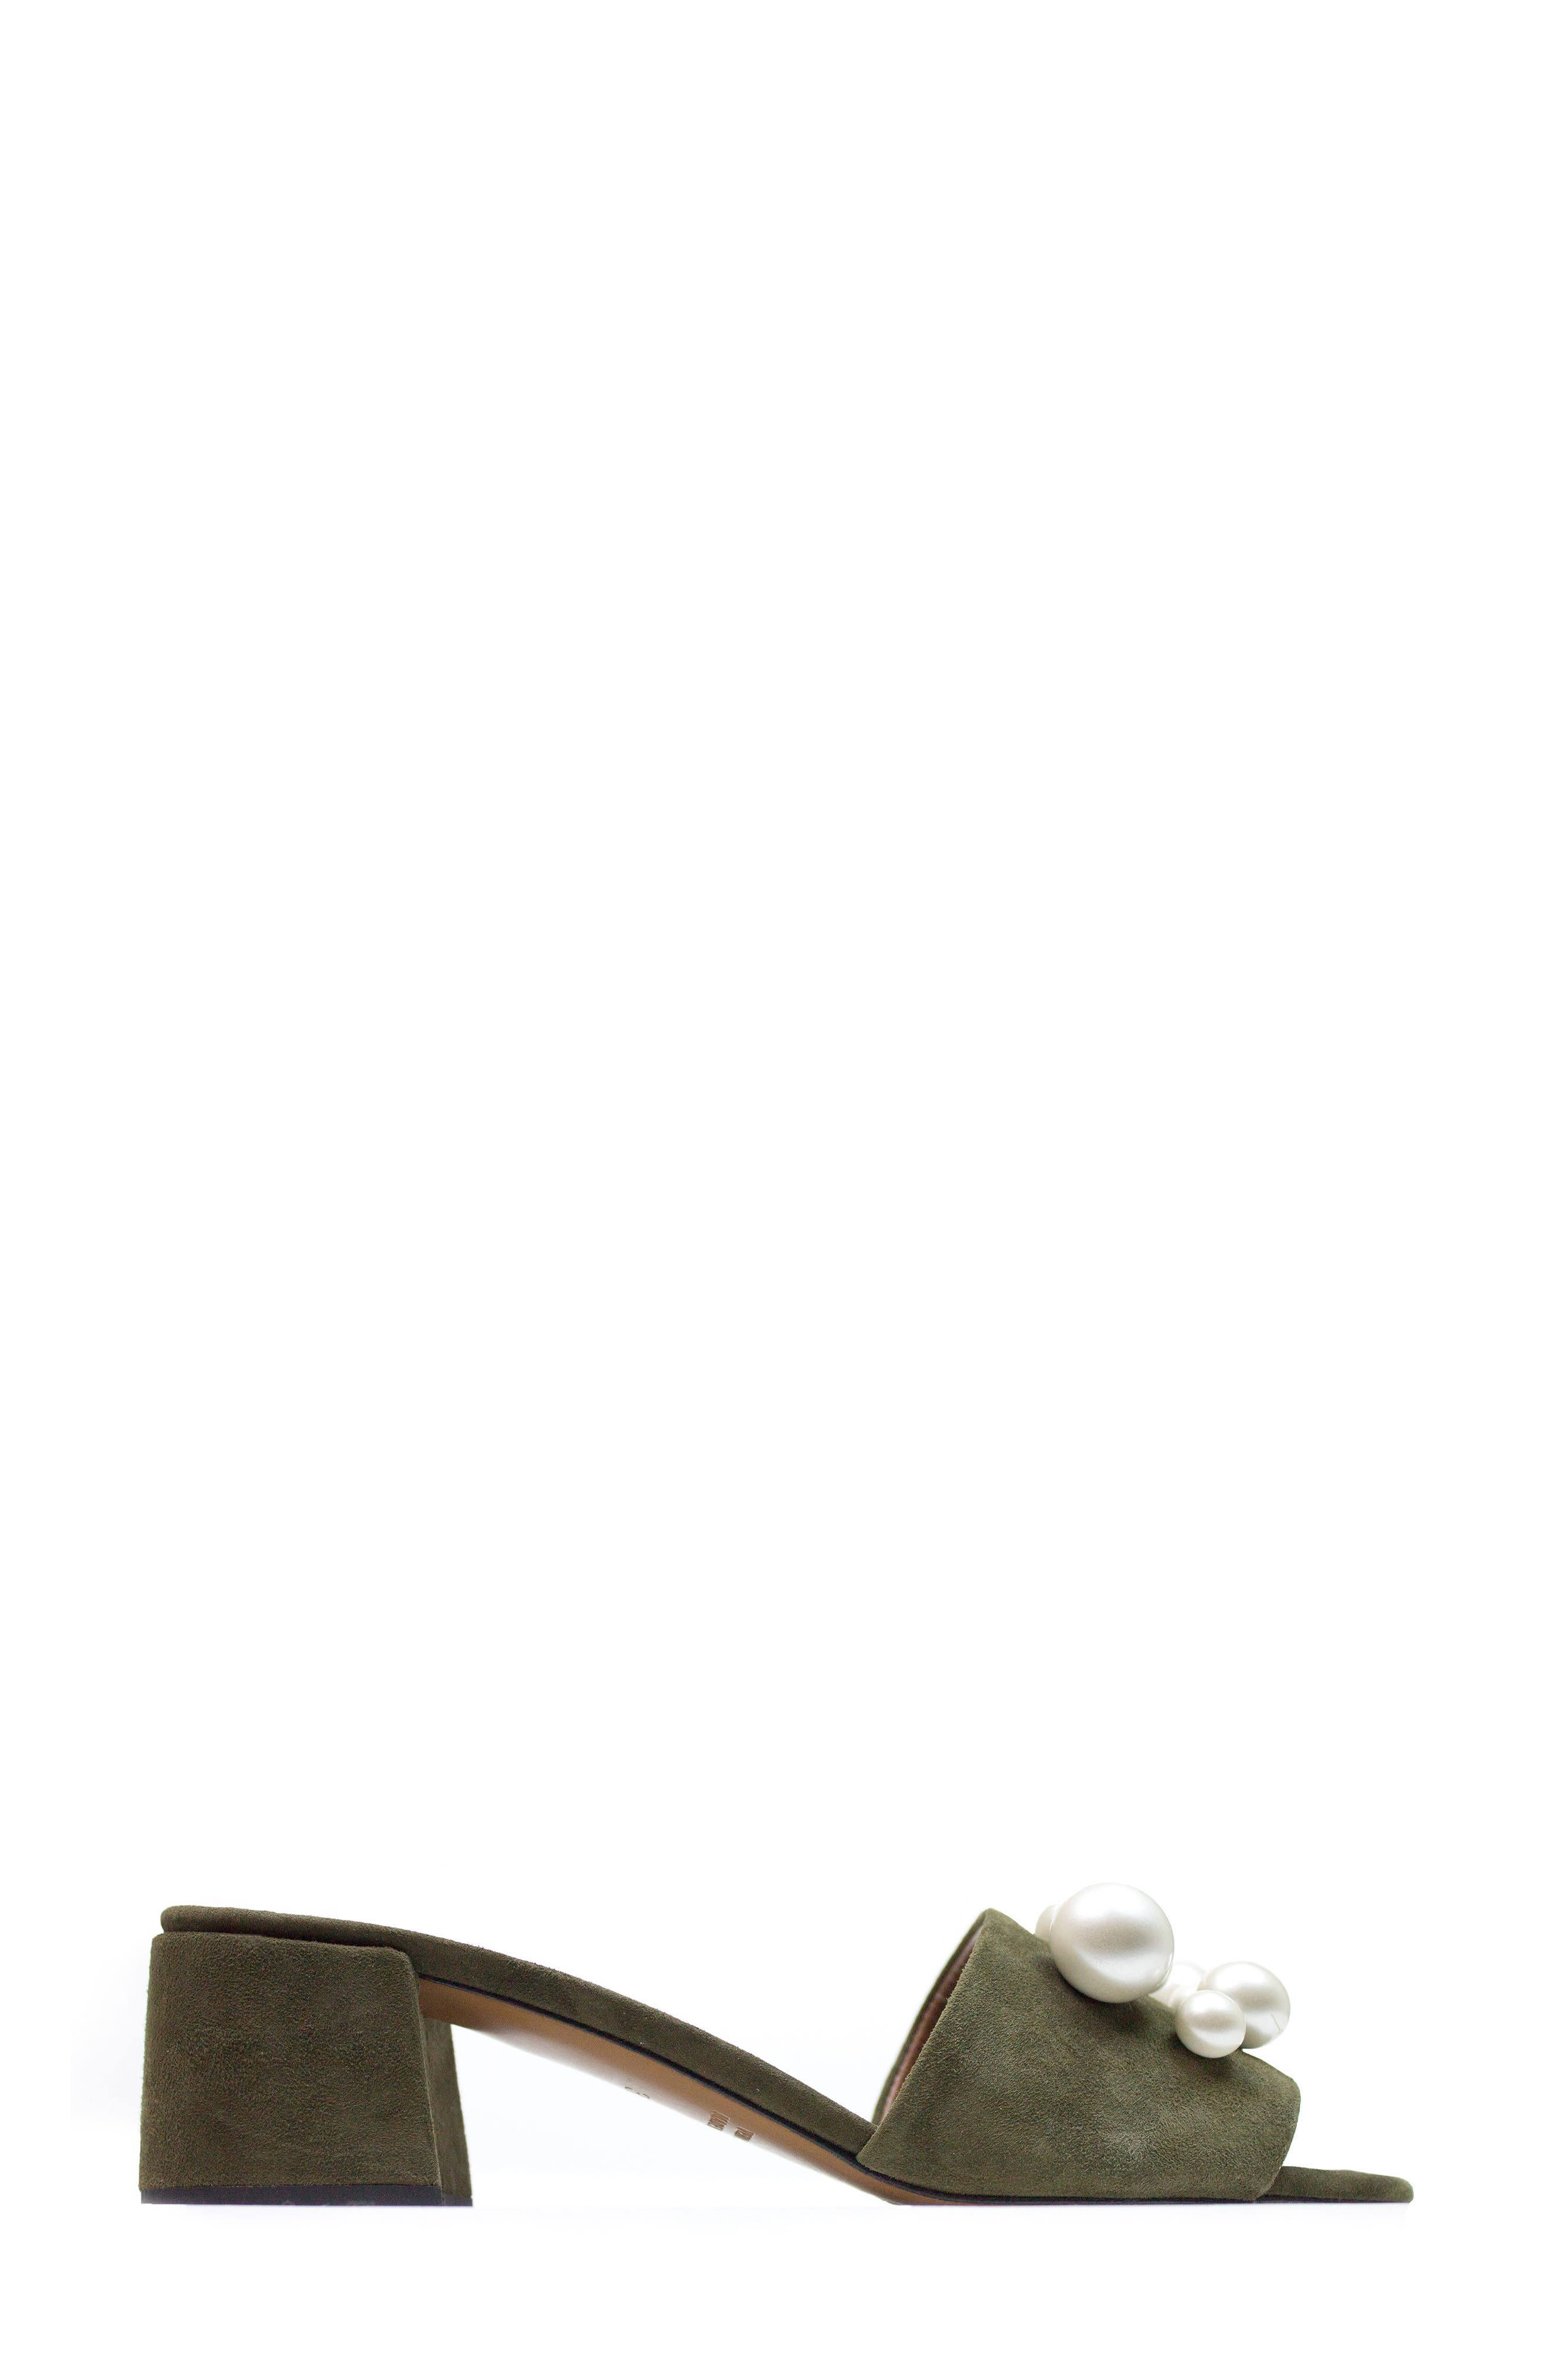 Ariella Beaded Slide Mule,                             Alternate thumbnail 3, color,                             Olive Suede